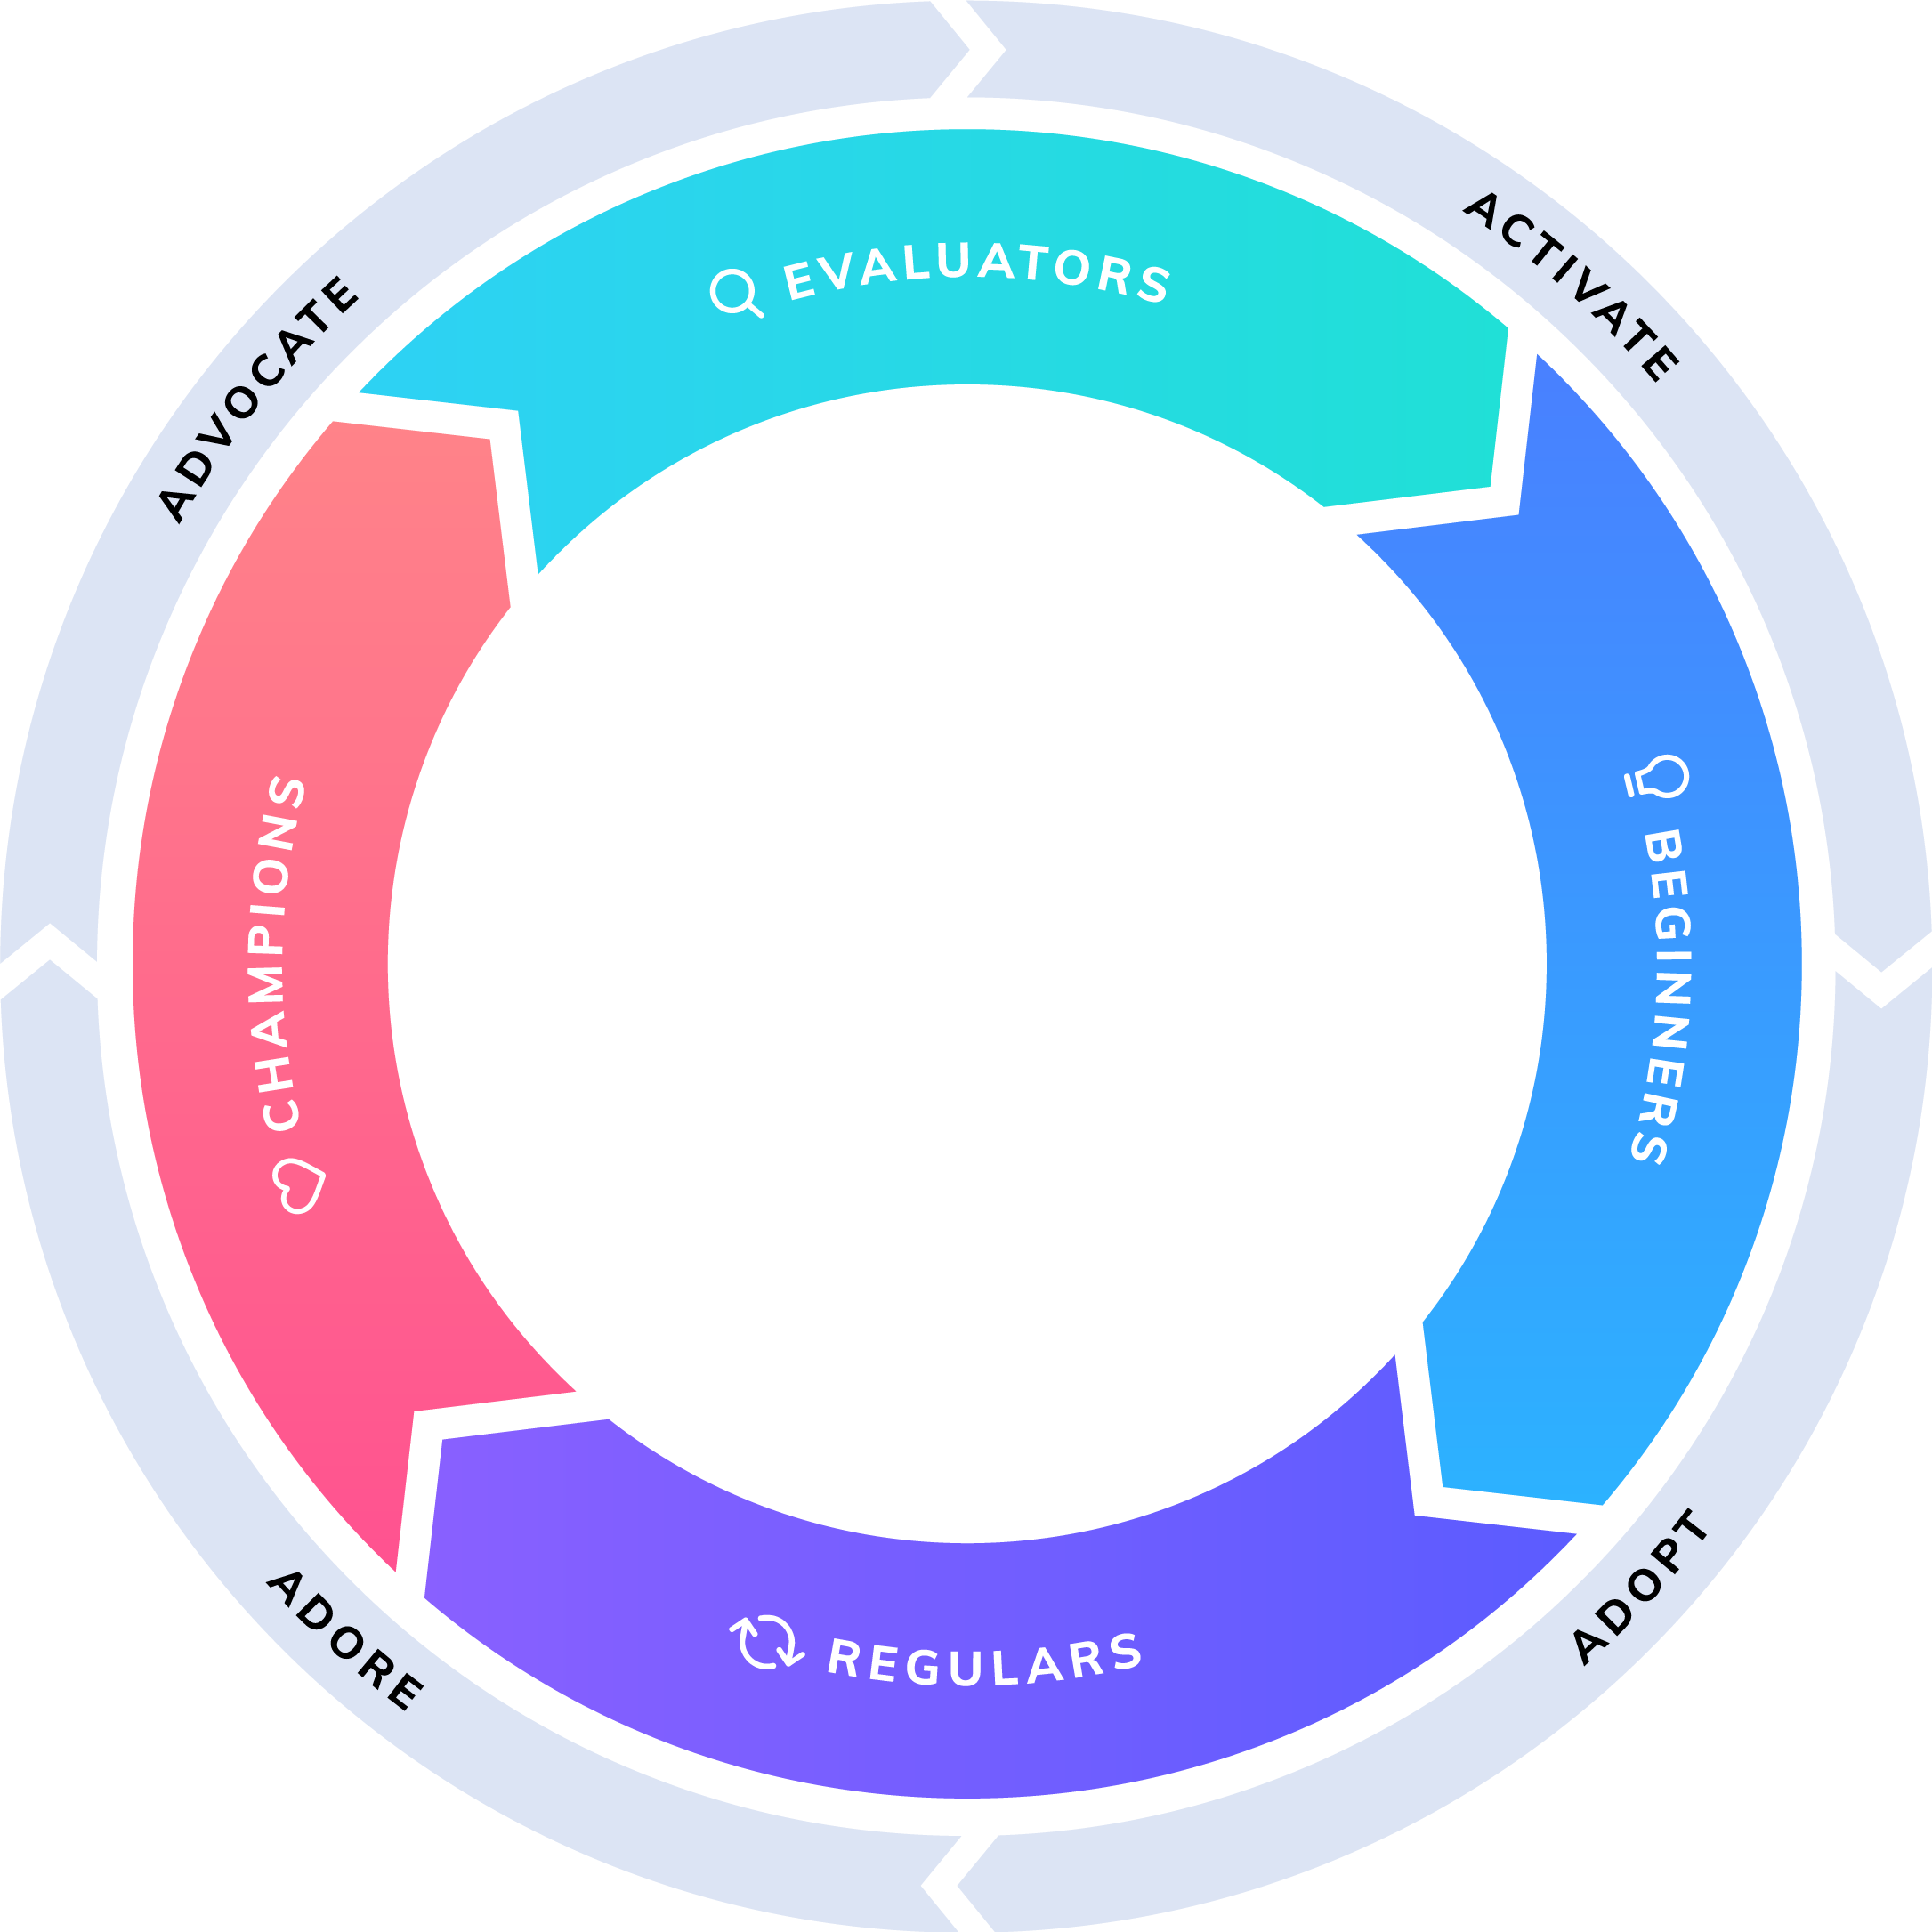 A product-led growth flywheel with inner rings showing the types of product users (evaluators, beginners, regulars, and champions) and outer rings that how the actions that need to be taken to get to the next inner ring (advocate, activate, adopt, adore).